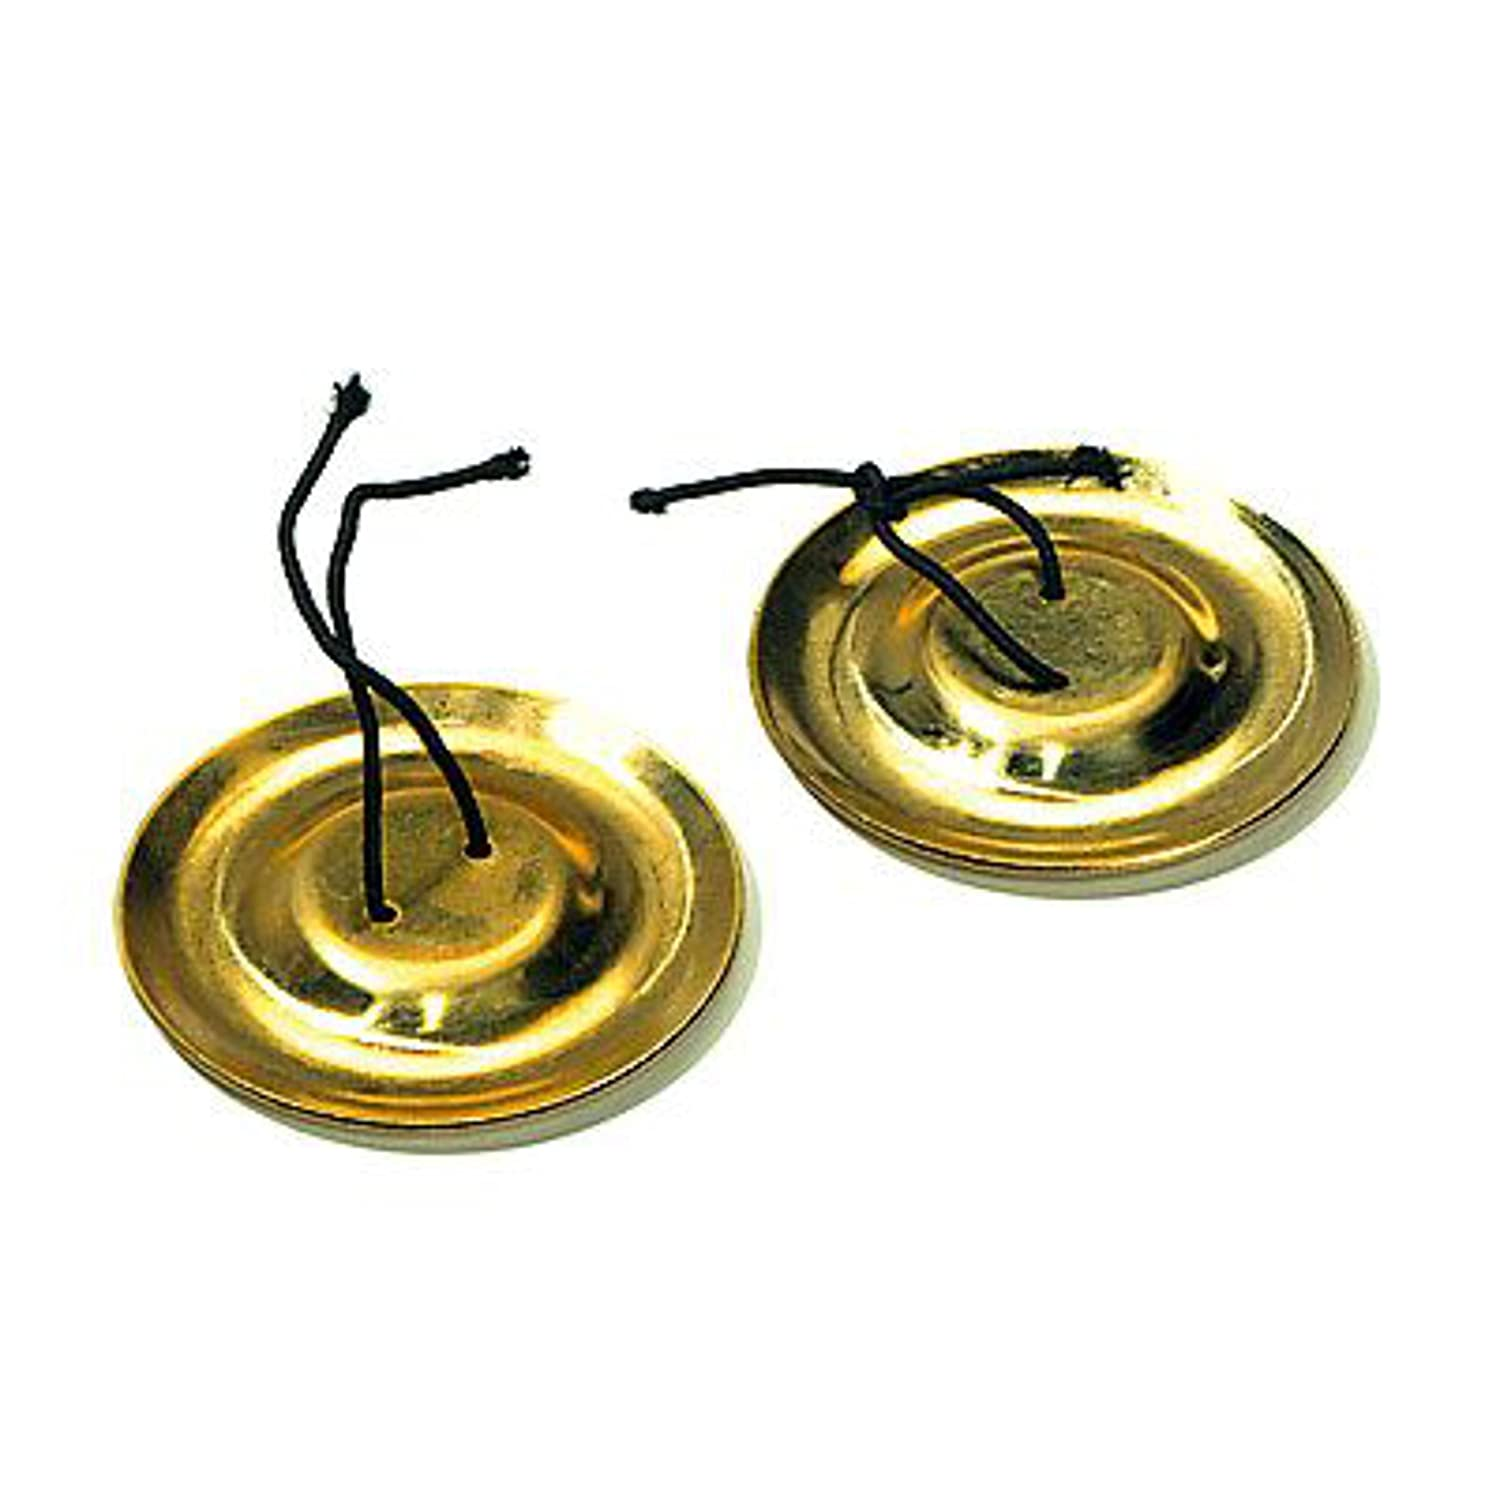 Sonor Orff PFC Finger Cymbals 2'' (5 cm ) - 1 Paar